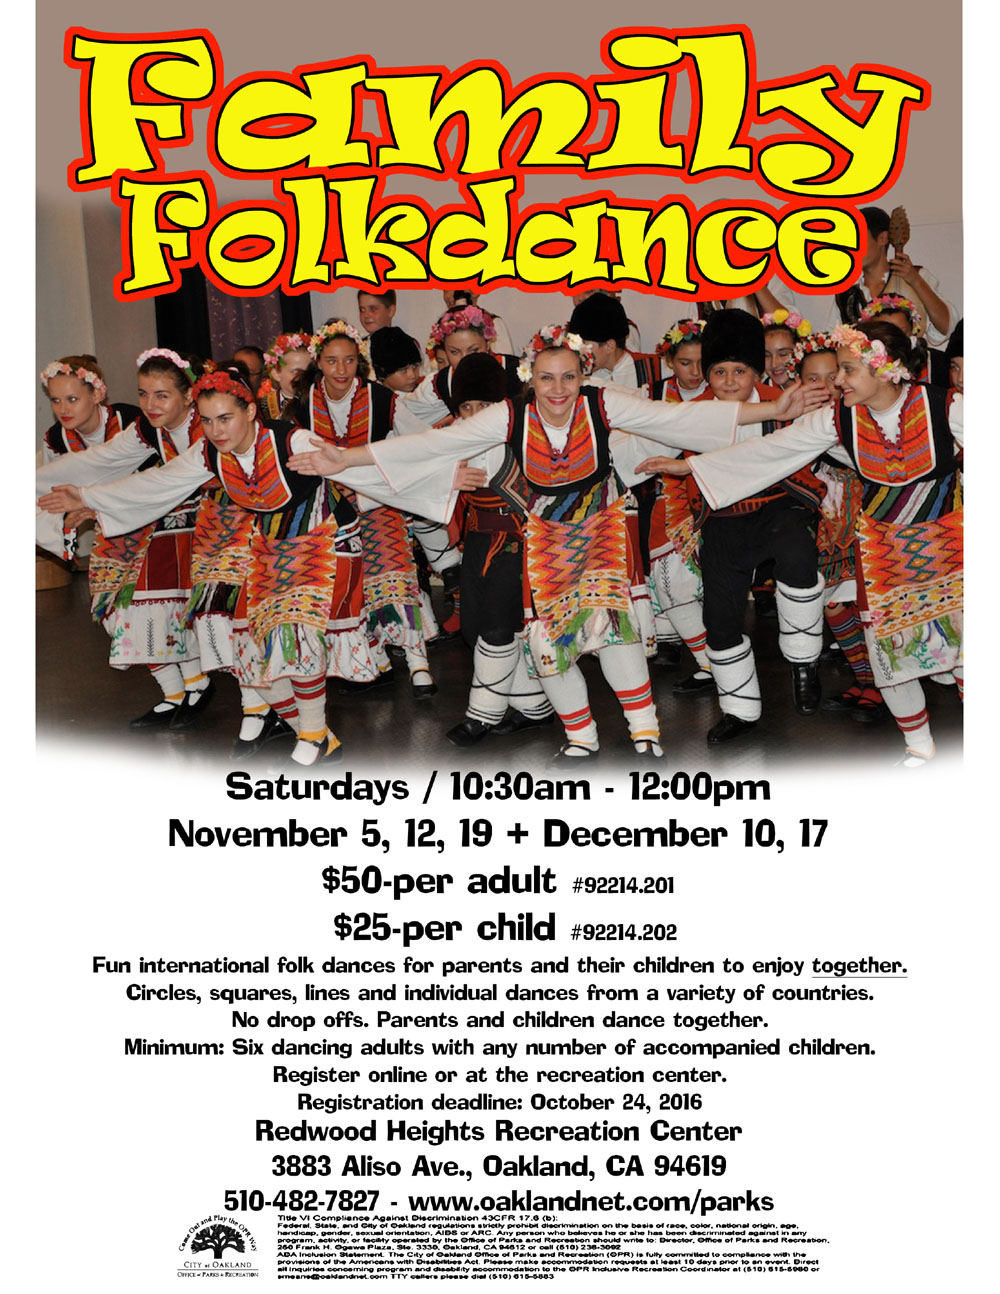 Family Folkdance at Redwood Heights Recreation Center